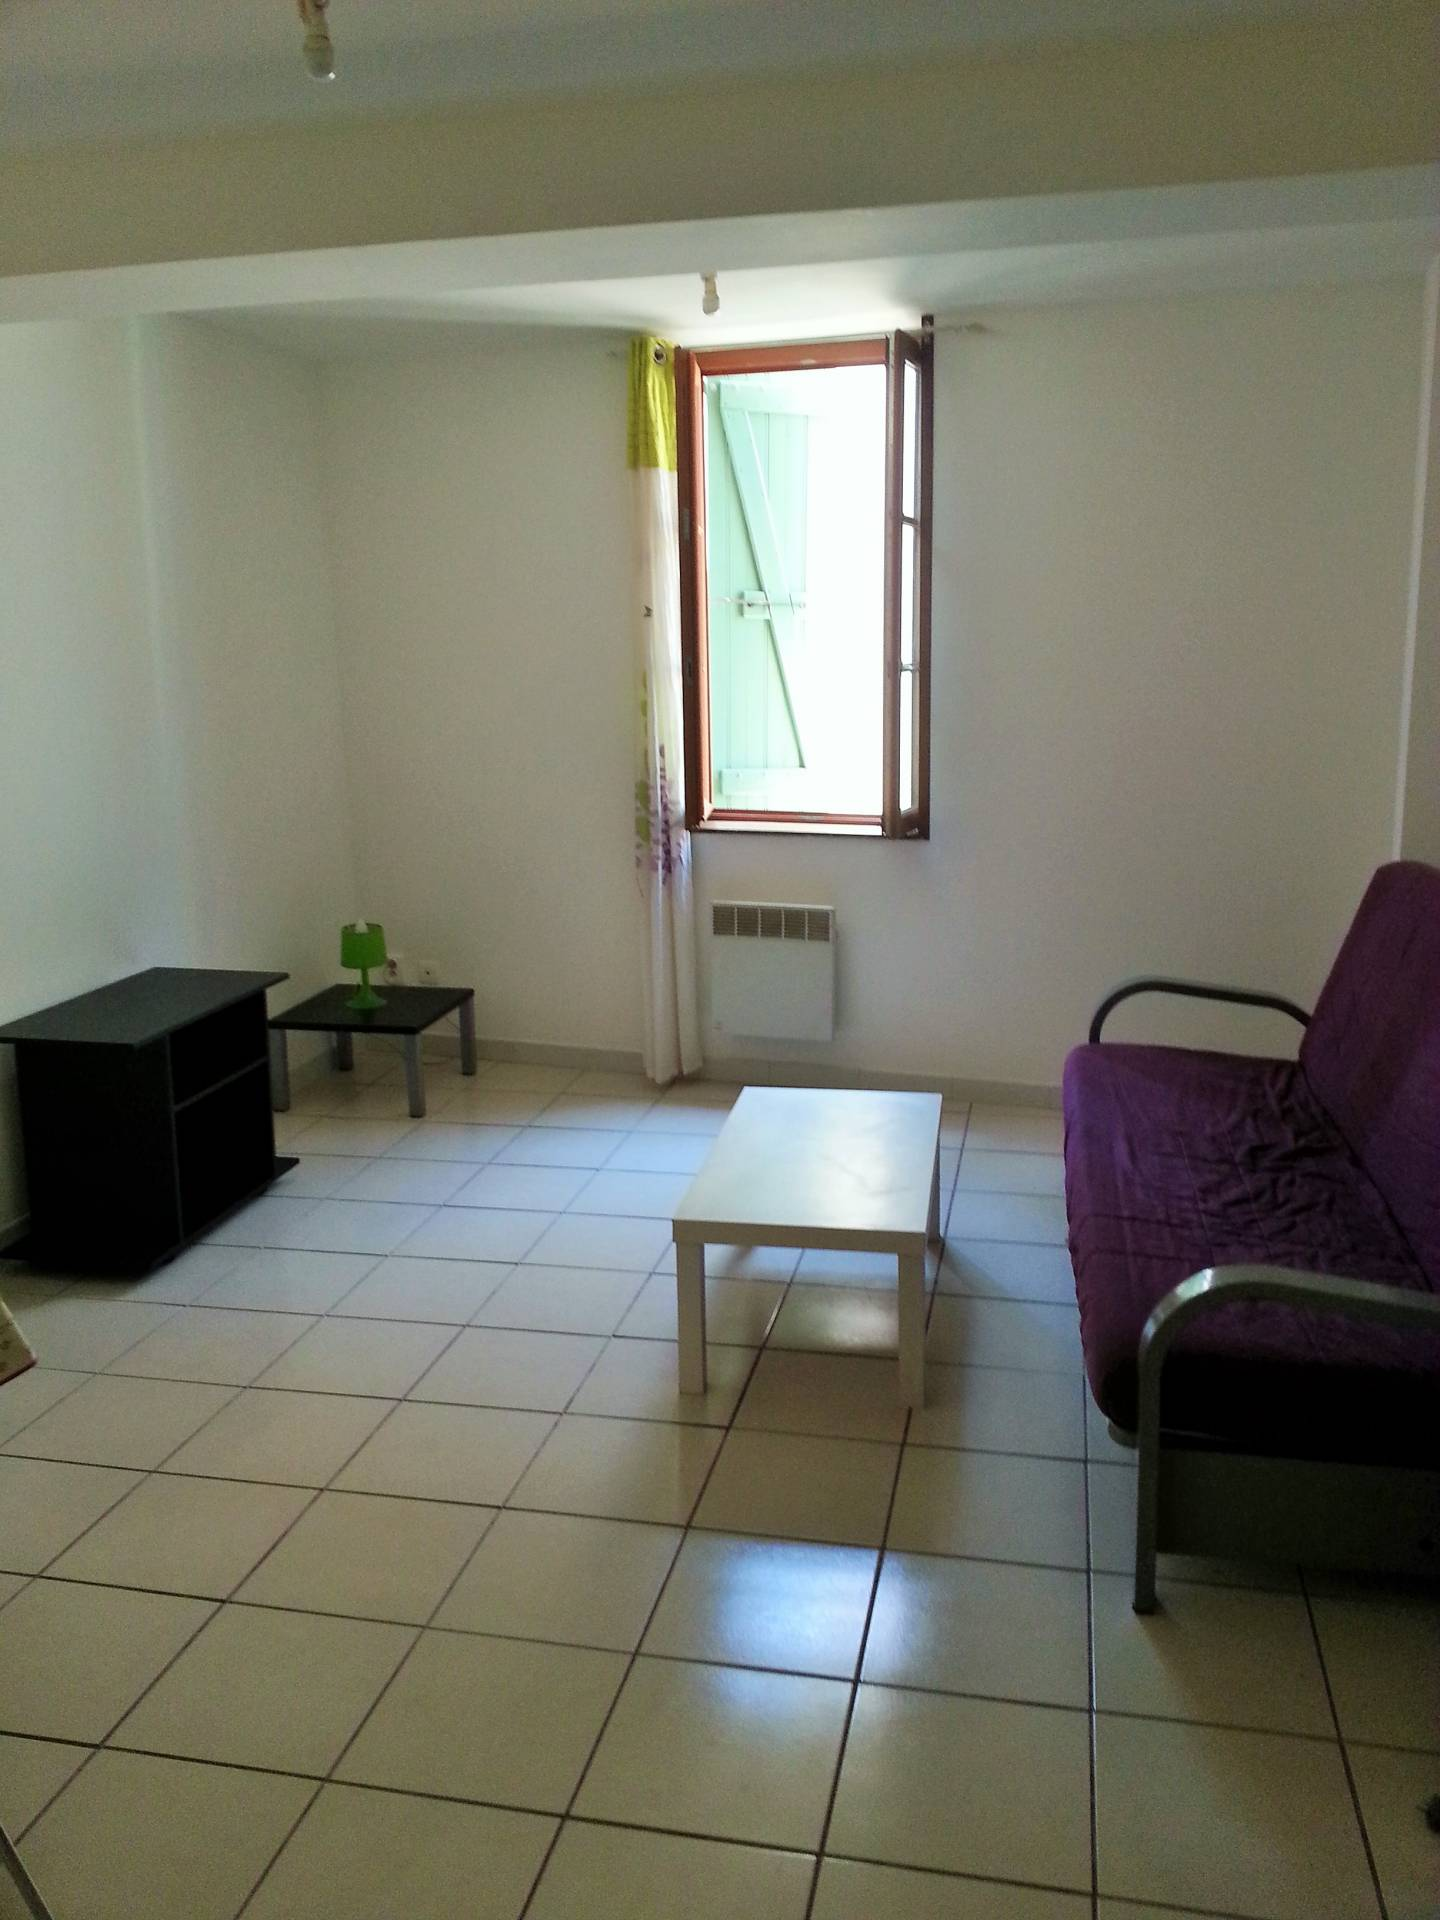 VENTE APPARTEMENT F2 NARBONNE